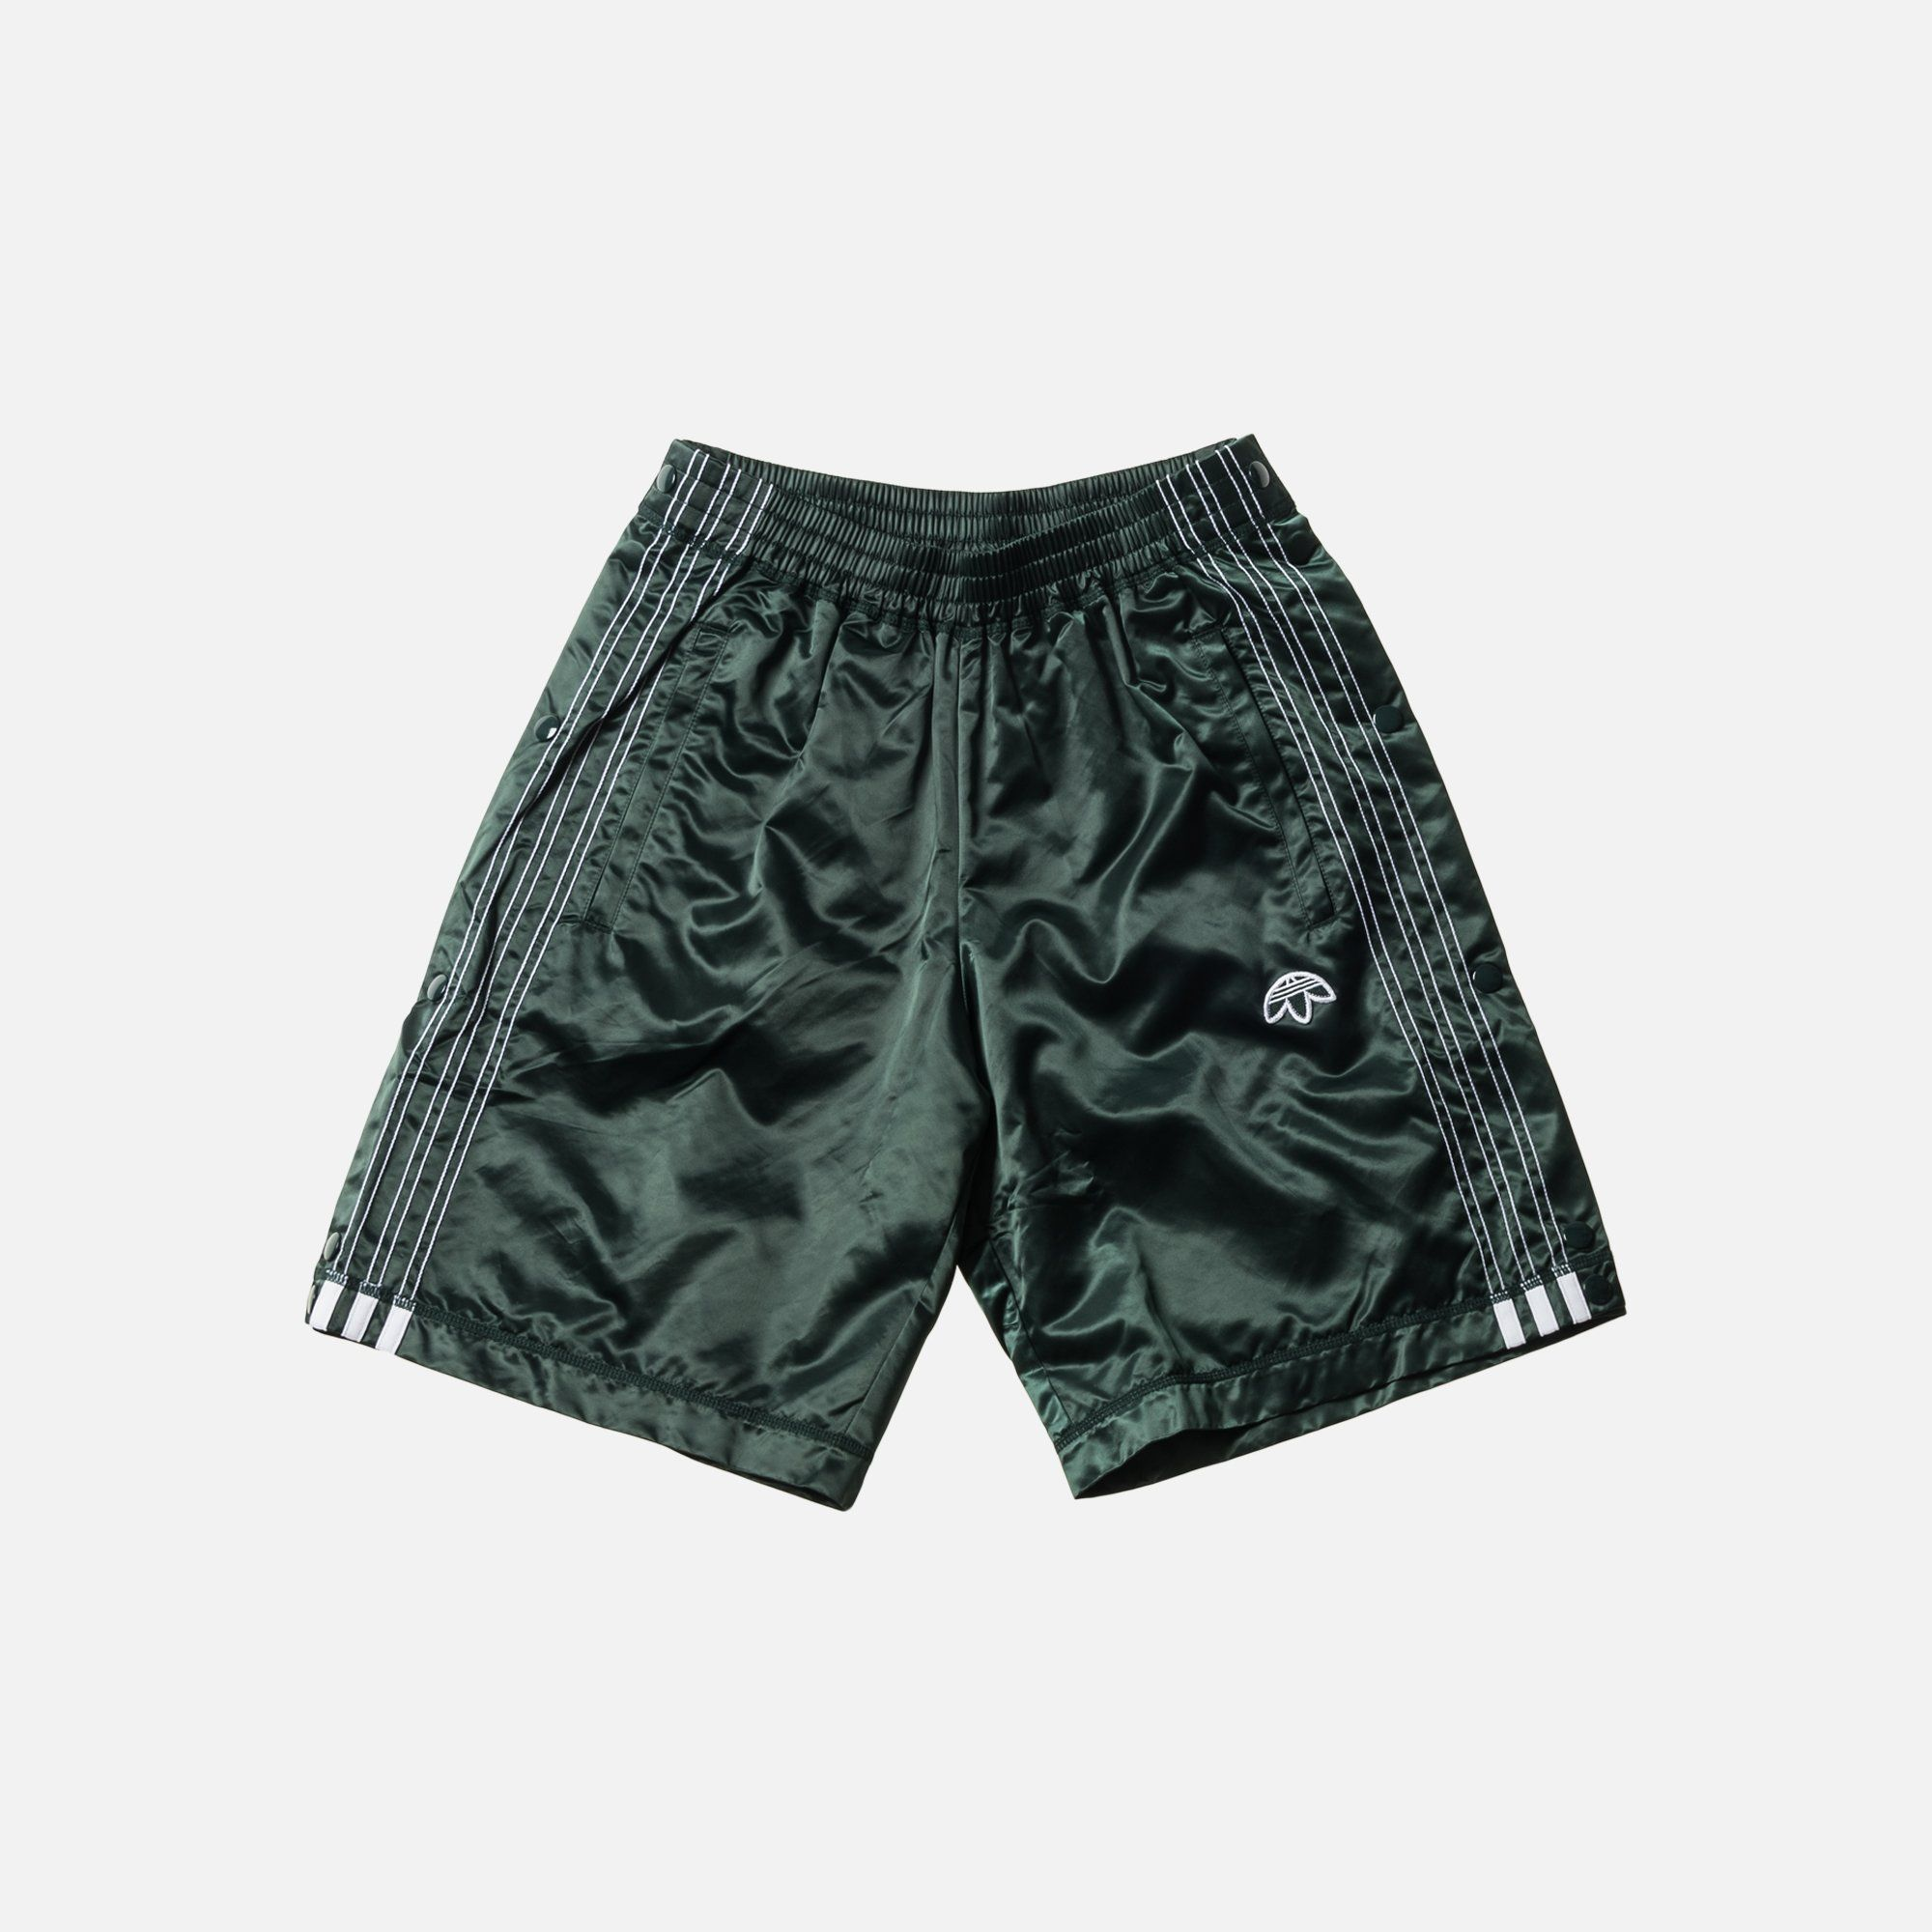 adidas Originals by Alexander Wang adiBreak Short Green